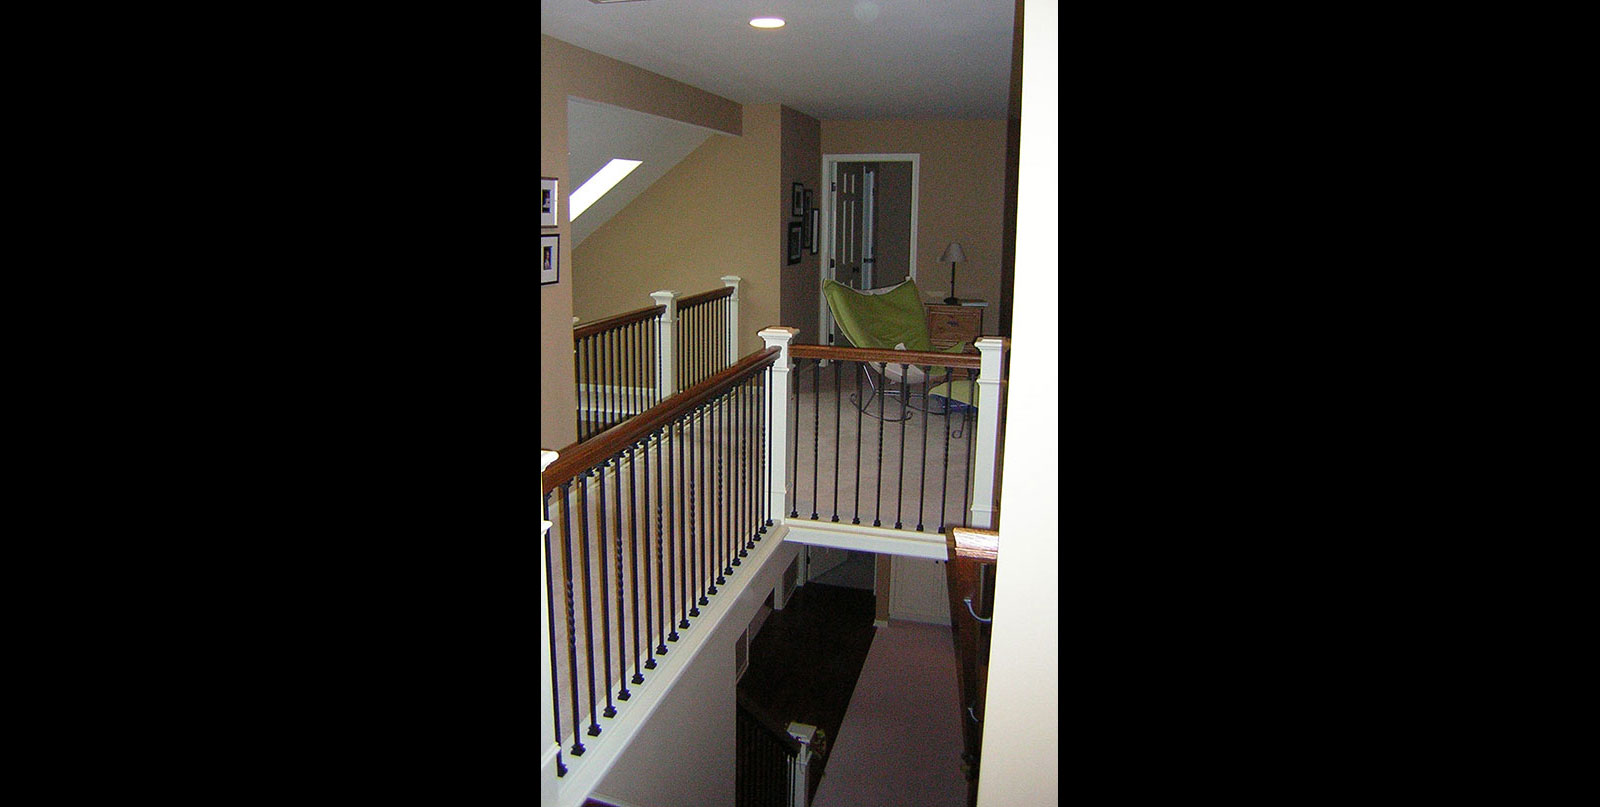 Covenant Construction Group - Complete Home Remodel, After, Stairway Upstairs - Ann Arbor, MI